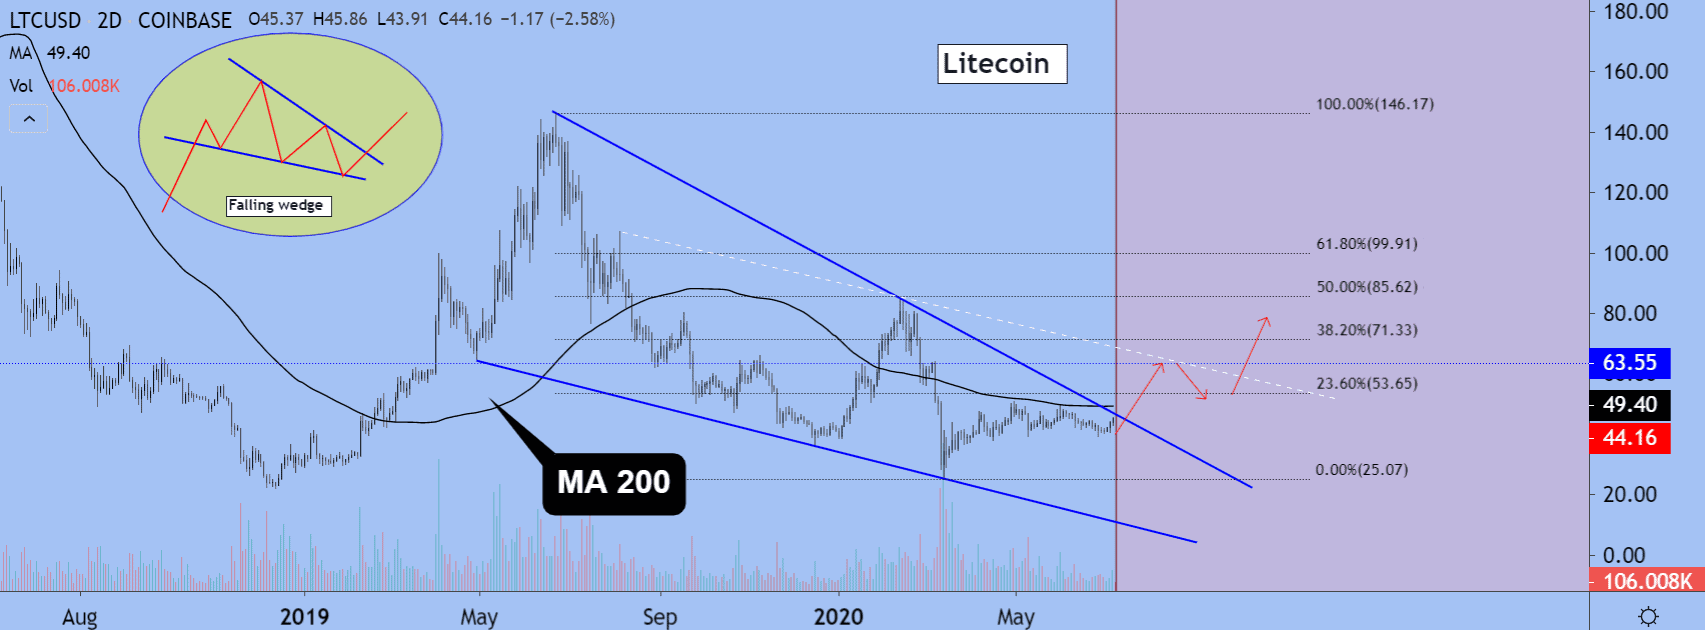 Litecoin price chart 2 - 9 July